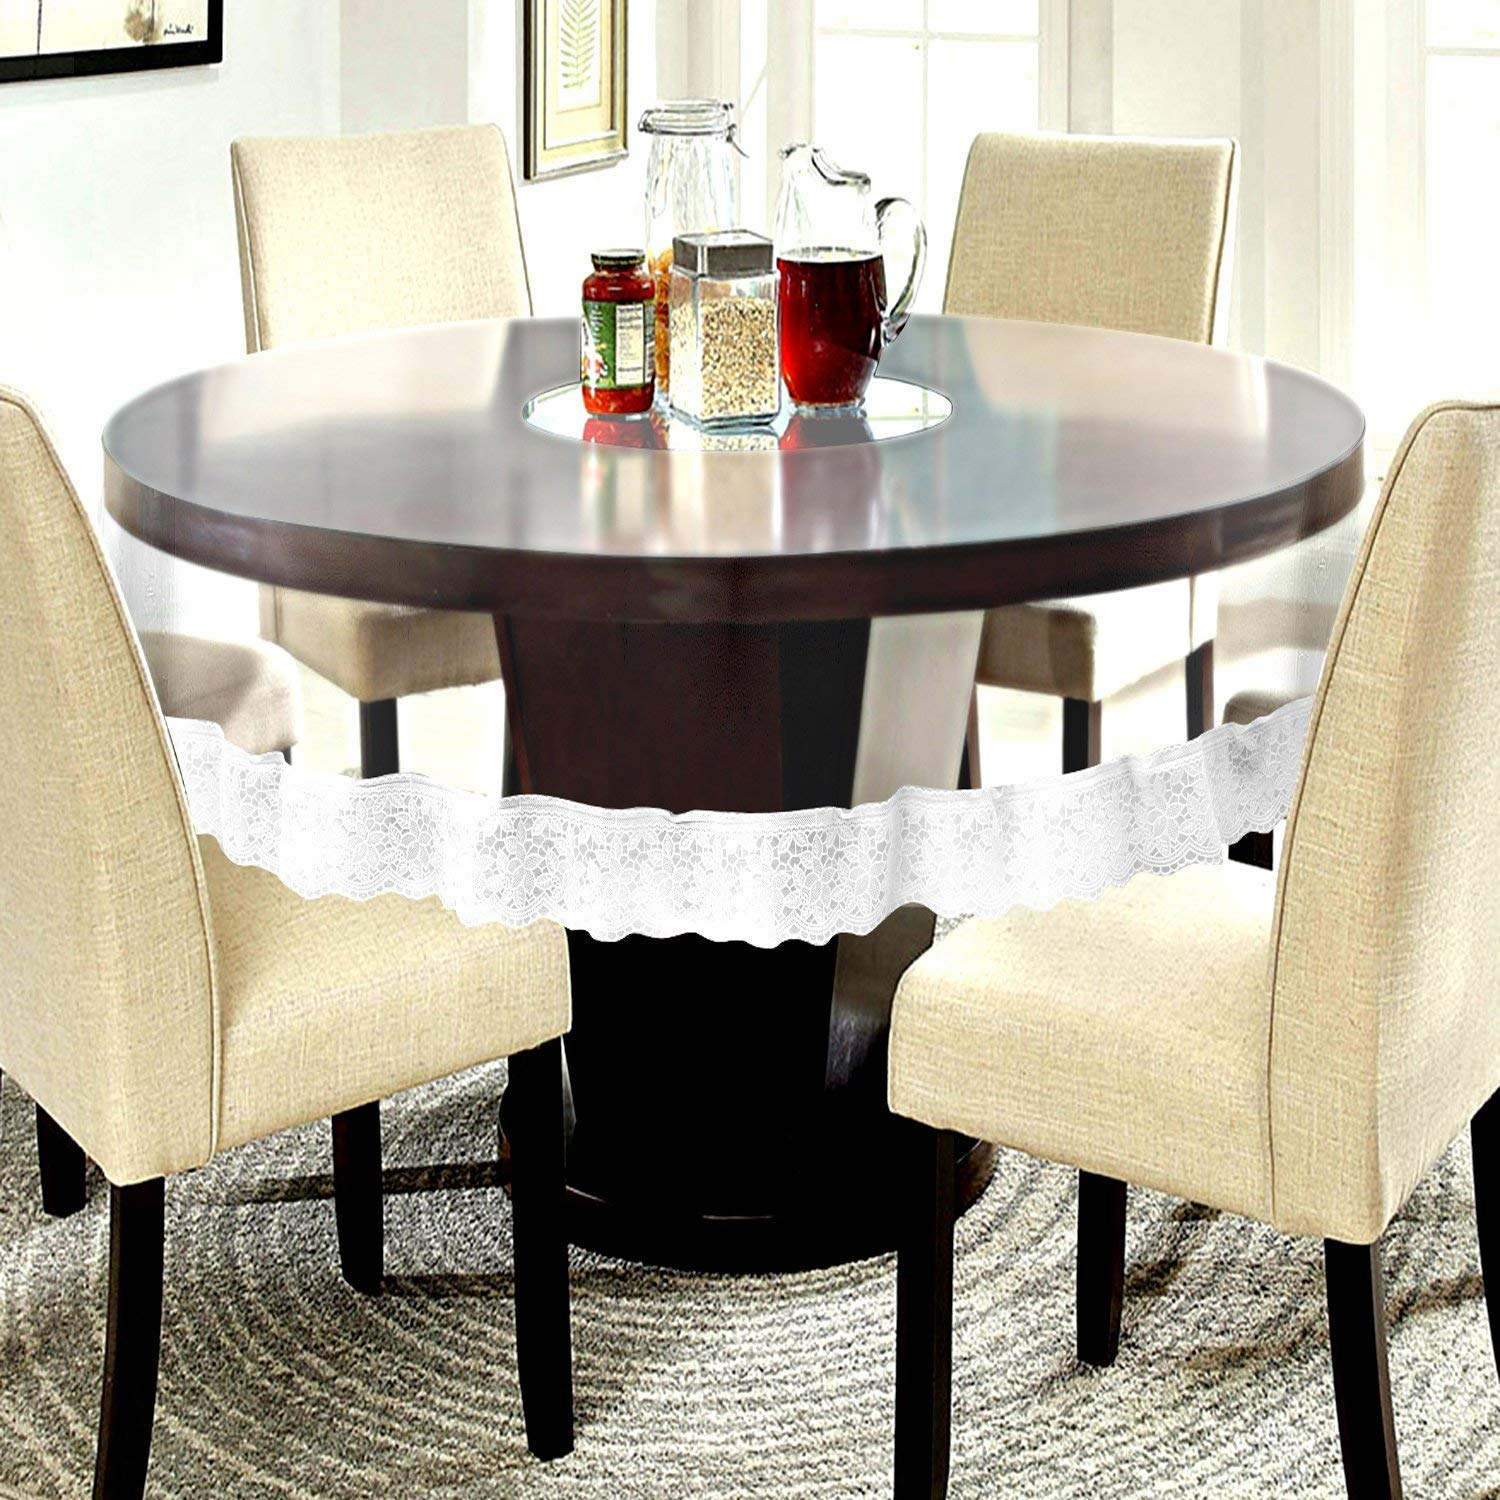 Buy Kartikey Pvc Waterproof 4 Seater Round Dining Table Cover Cloth Transparent With White Border Lace 60 Inches Online At Low Prices In India Amazon In